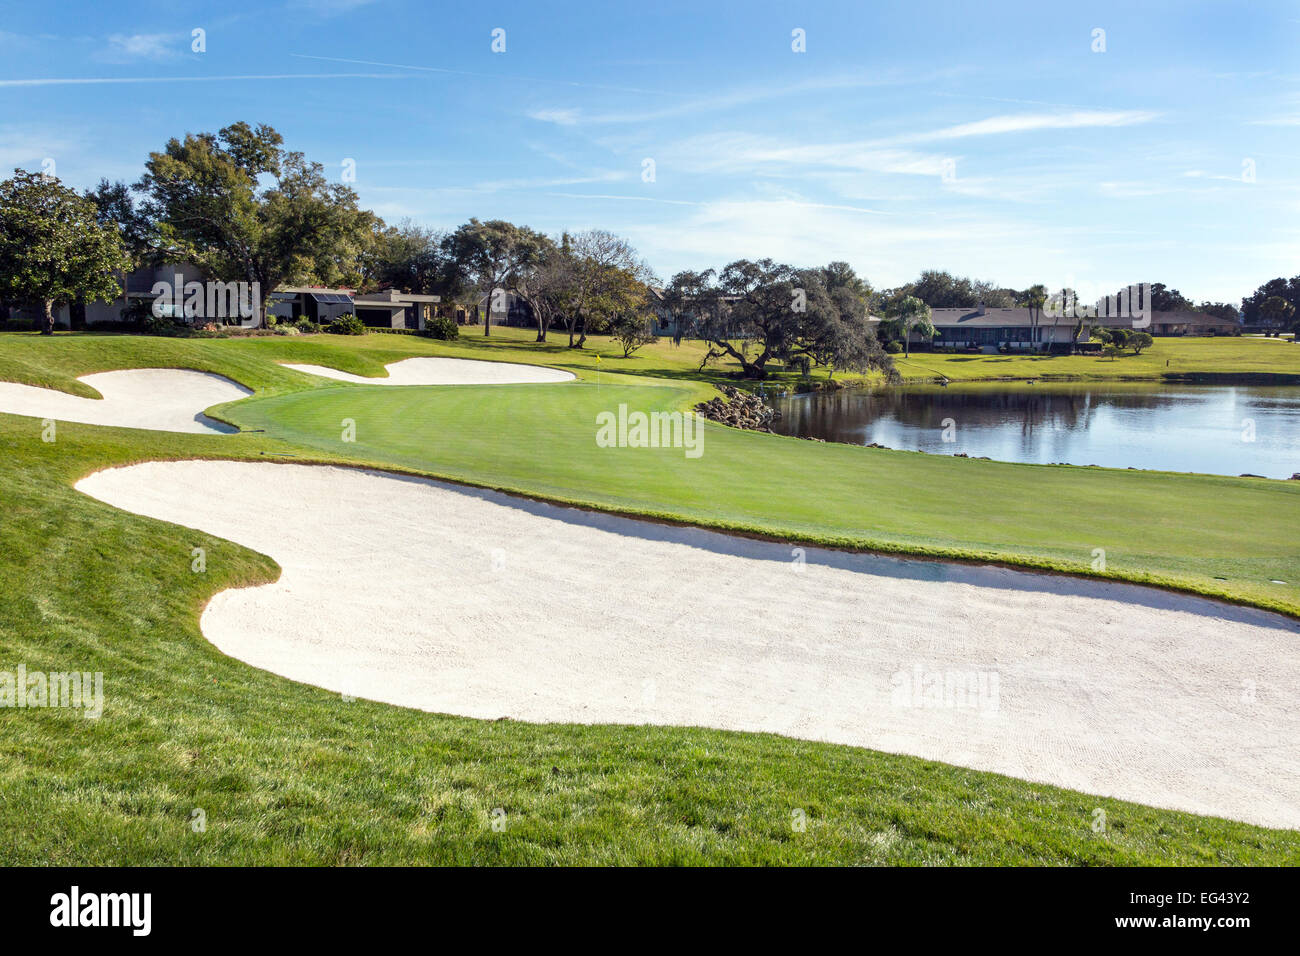 Iconic 18th green at Arnold Palmer's Bay Hill Golf Course, Orlando, Florida, America - Stock Image